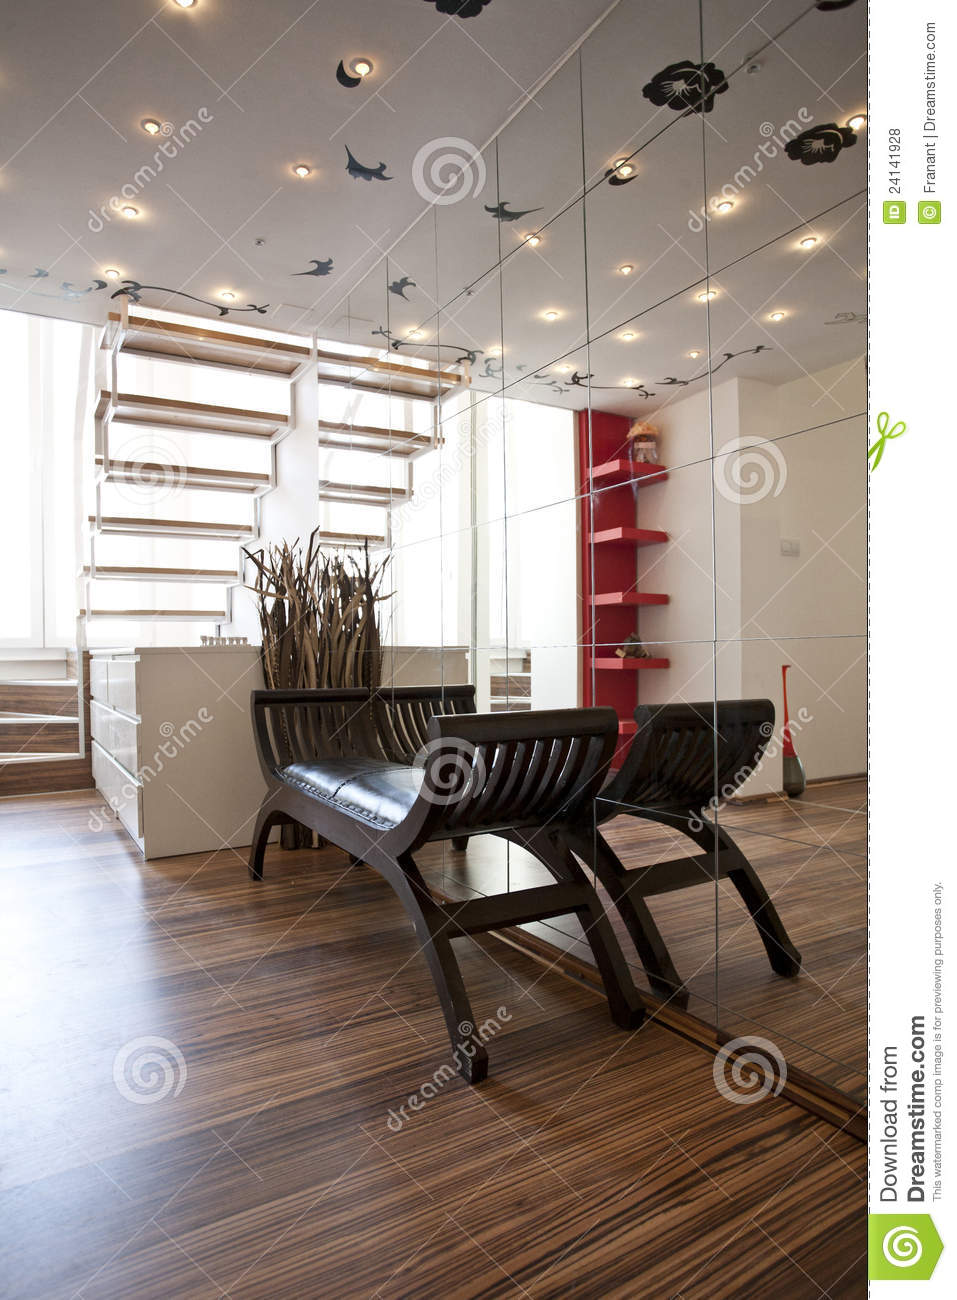 home lobby interior design stock photo image of mirrors 24141928. Black Bedroom Furniture Sets. Home Design Ideas